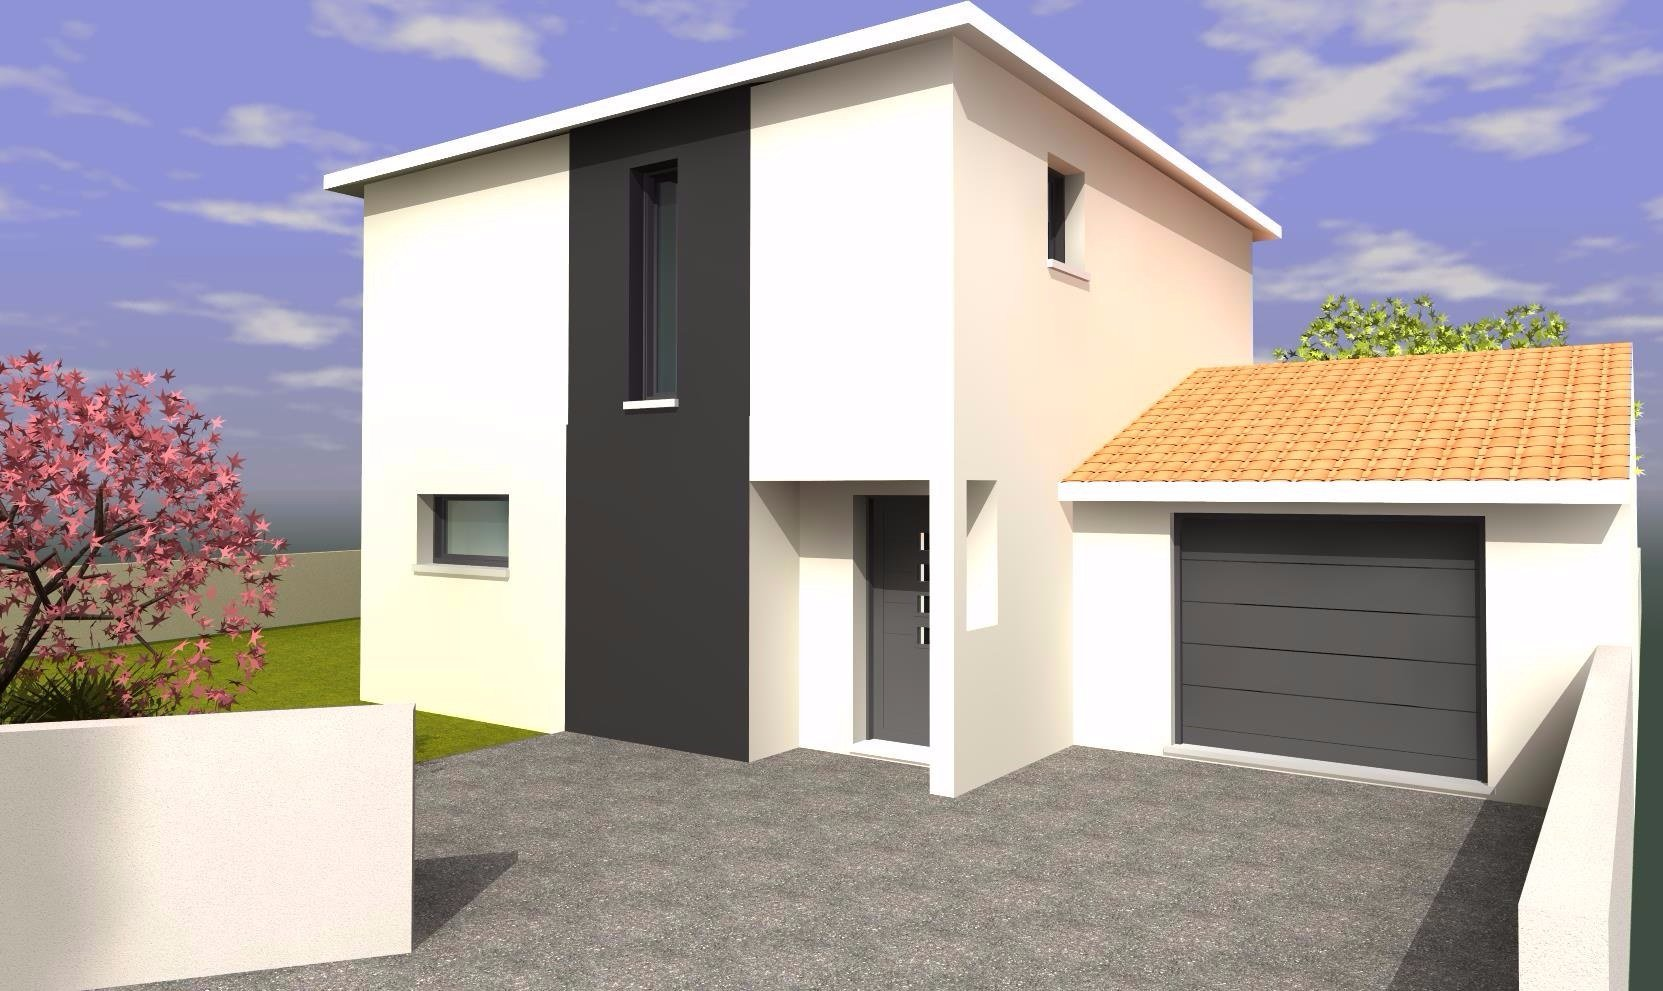 MAISONS DZ étage 105m² garage simple